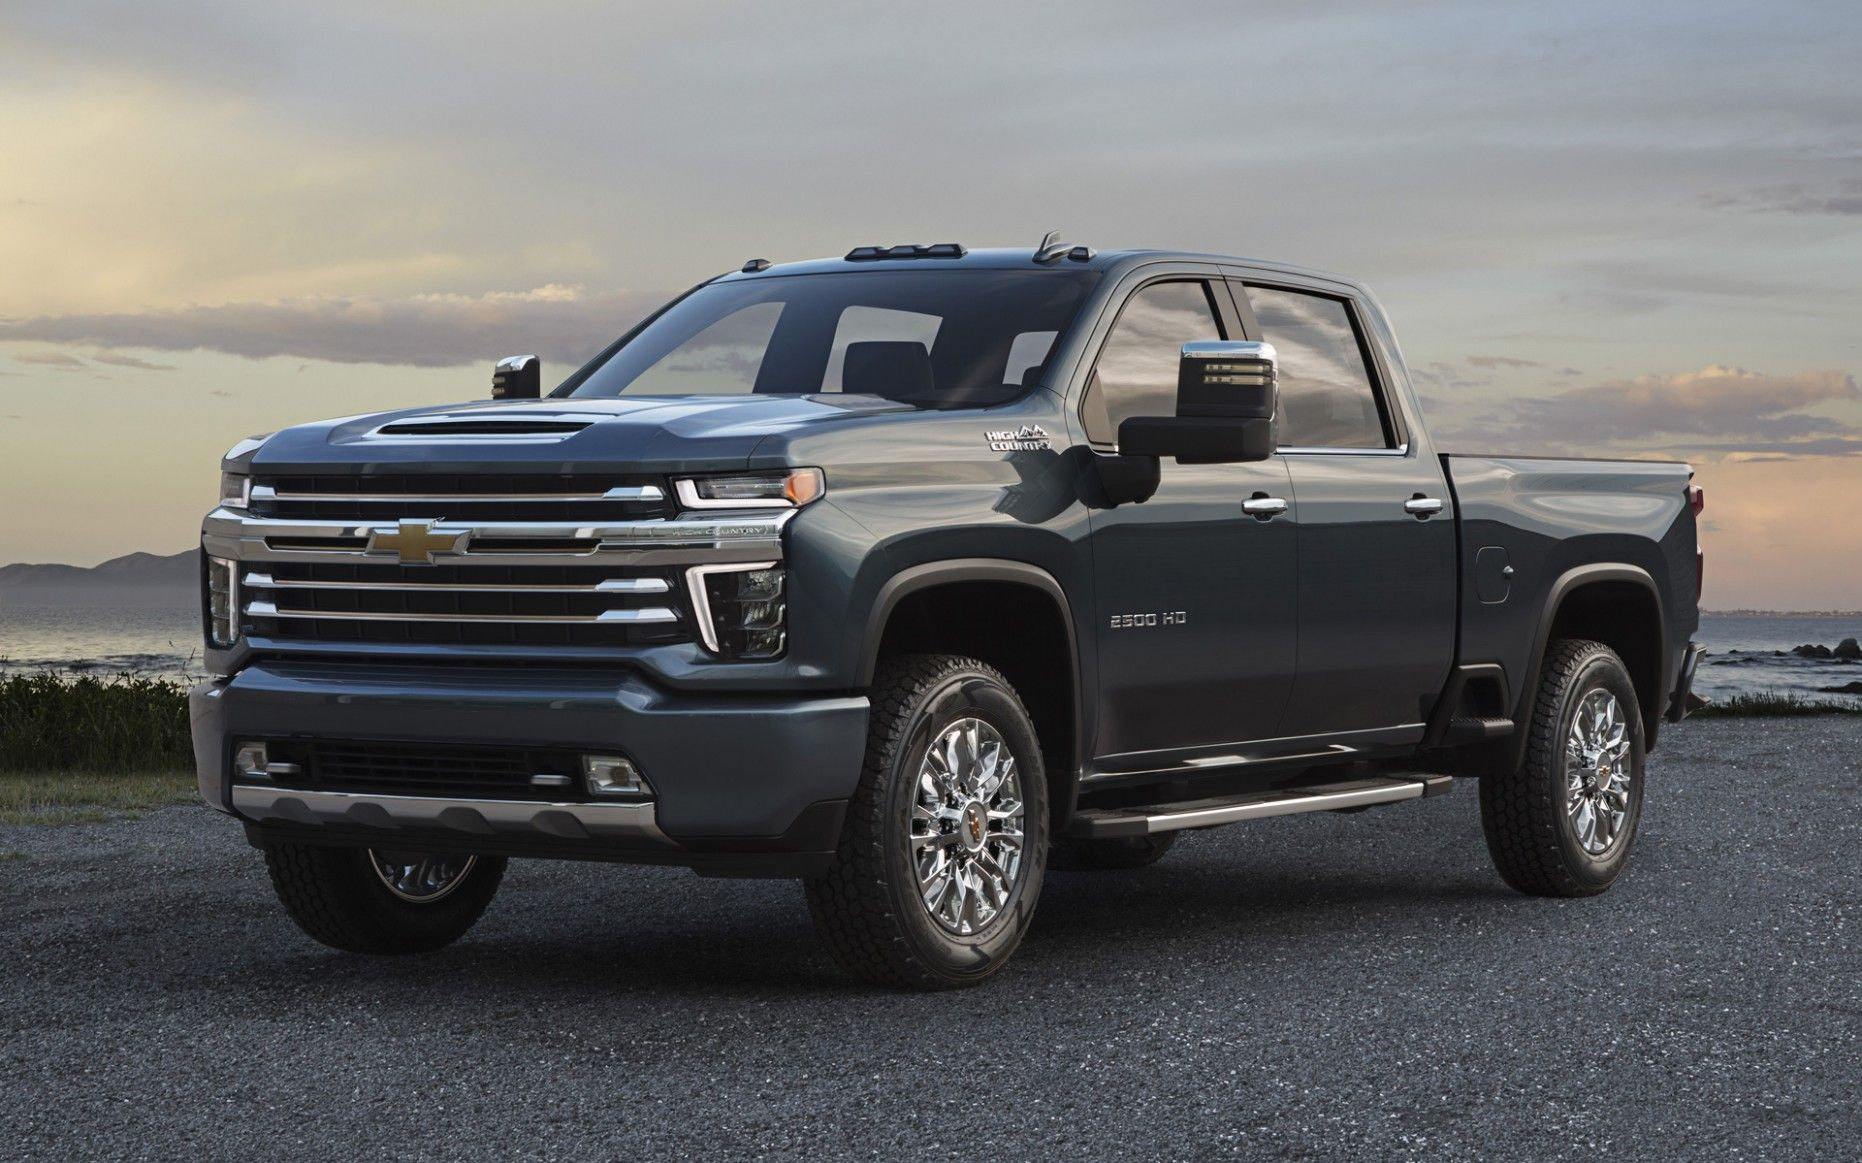 Is 2020 Silverado 1500 2500 Hd Design The Most Trending Thing Now